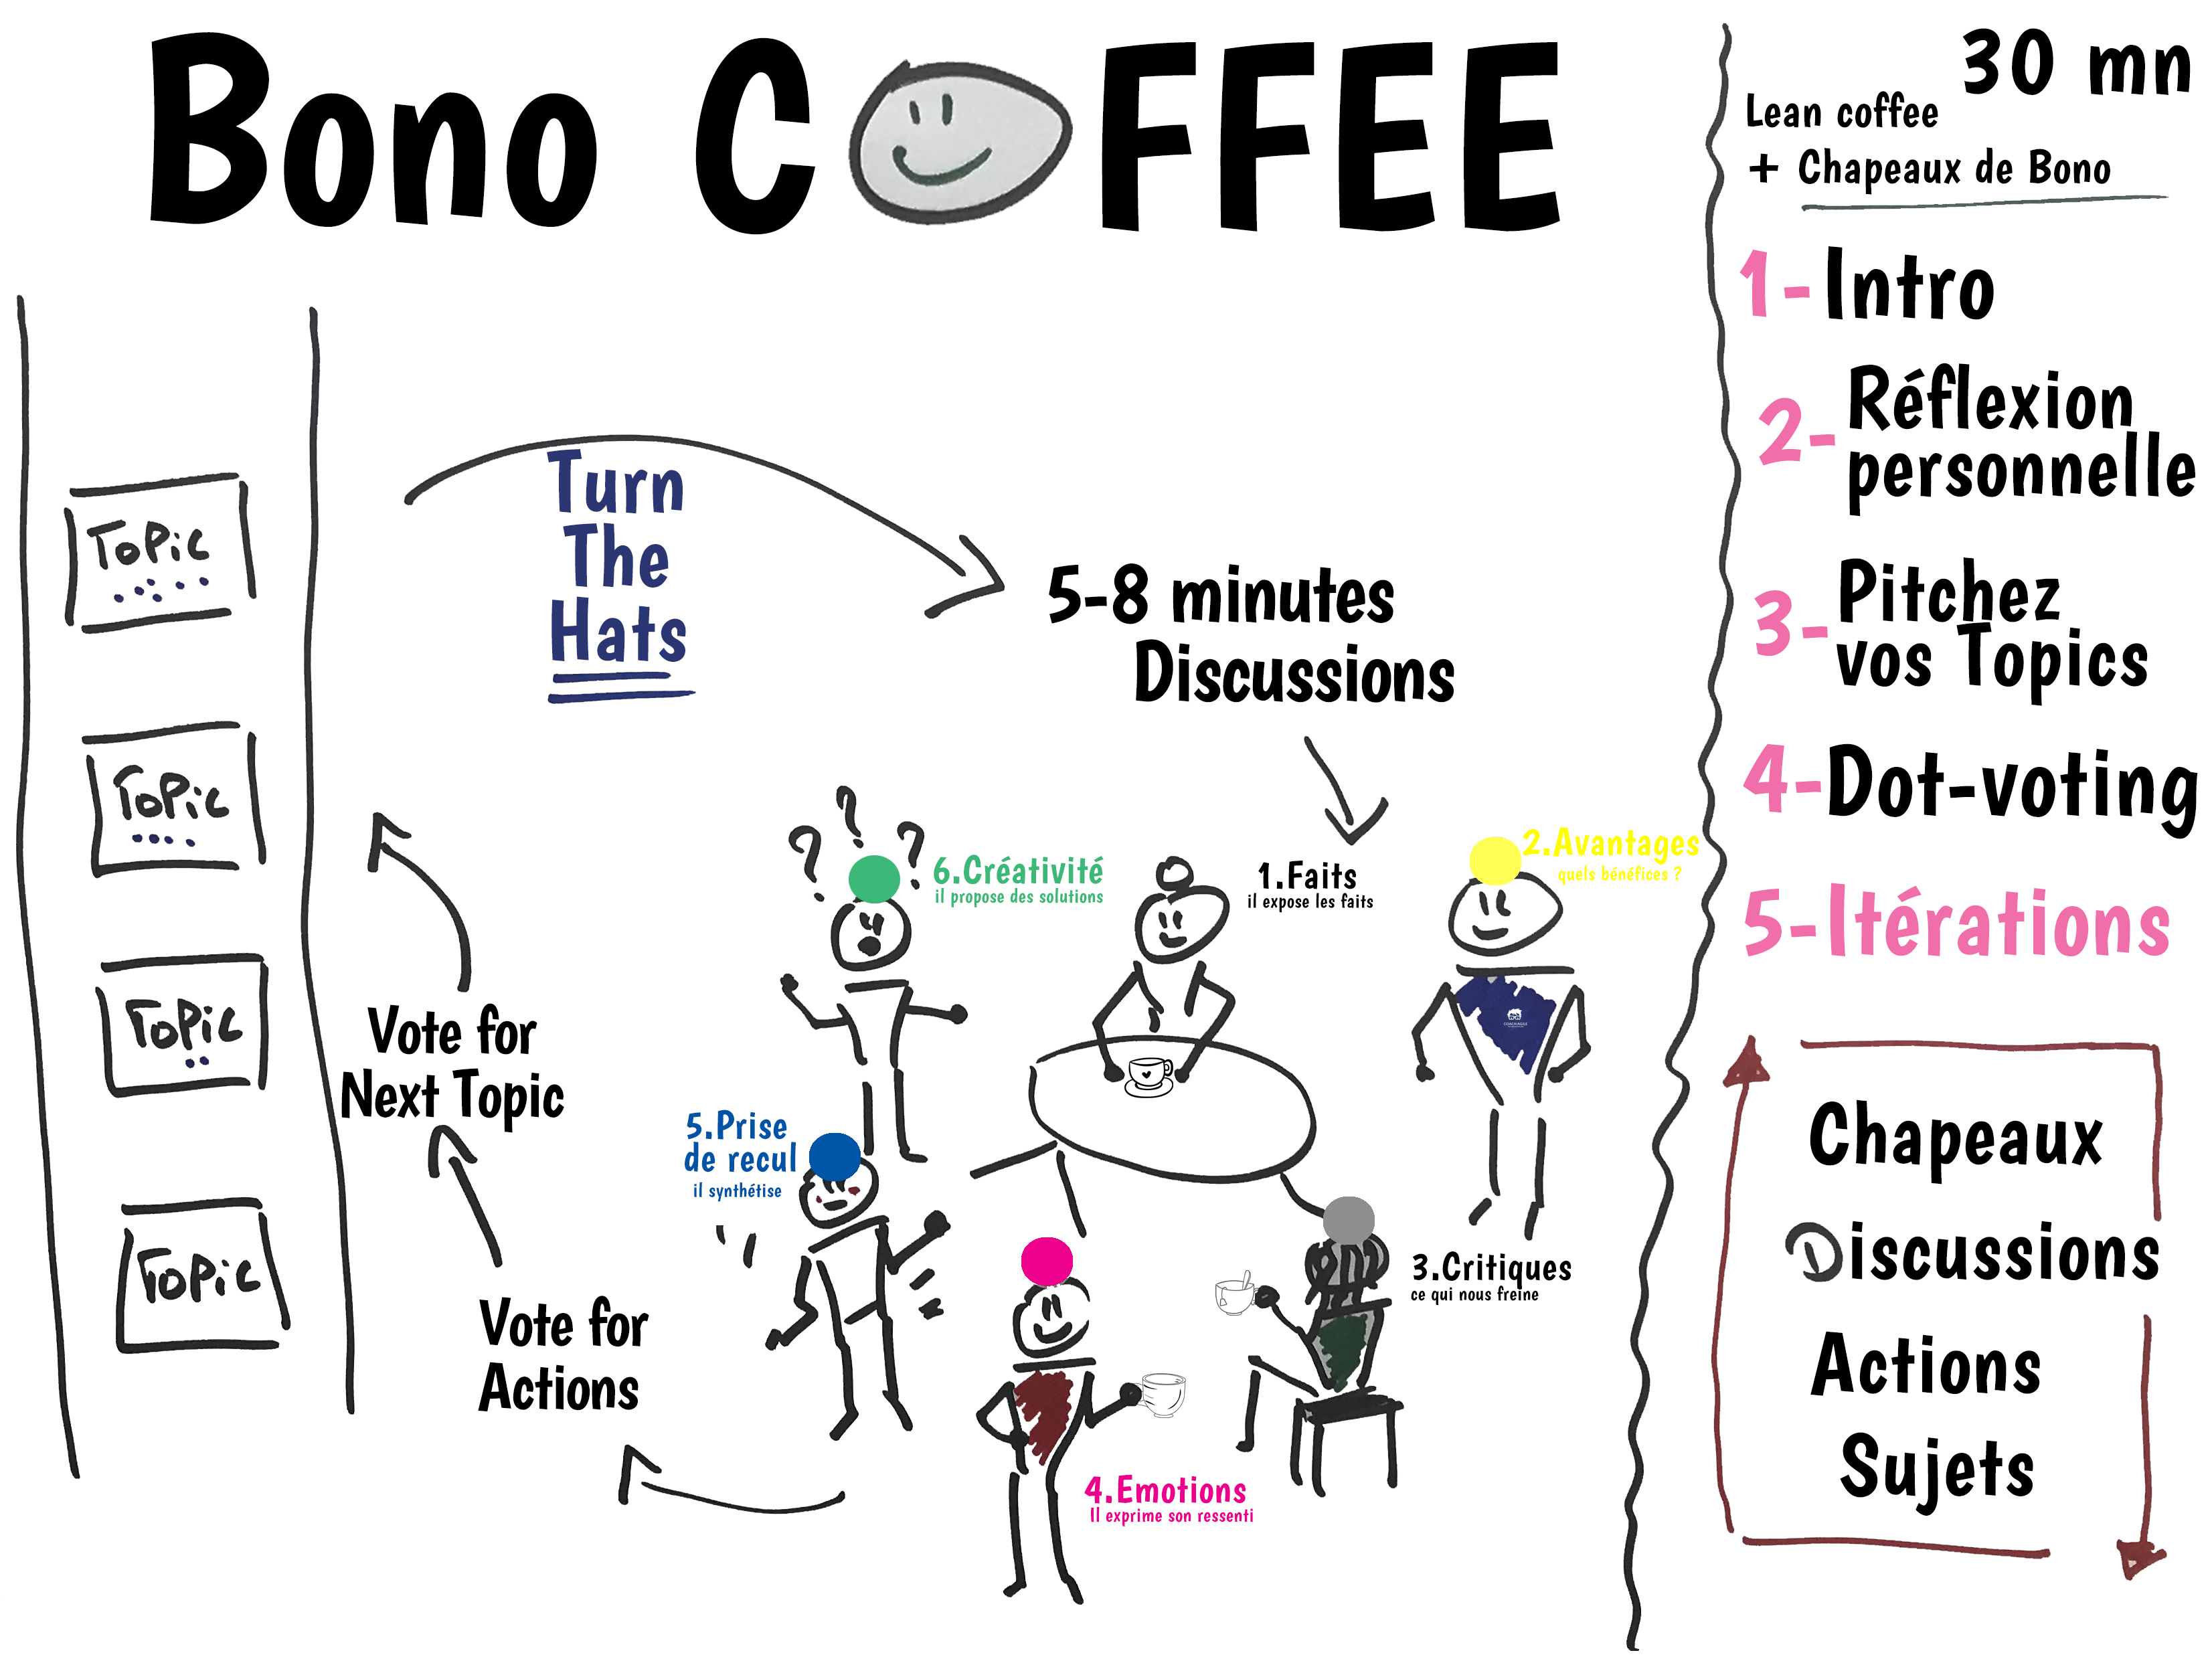 Agile Bono Coffee